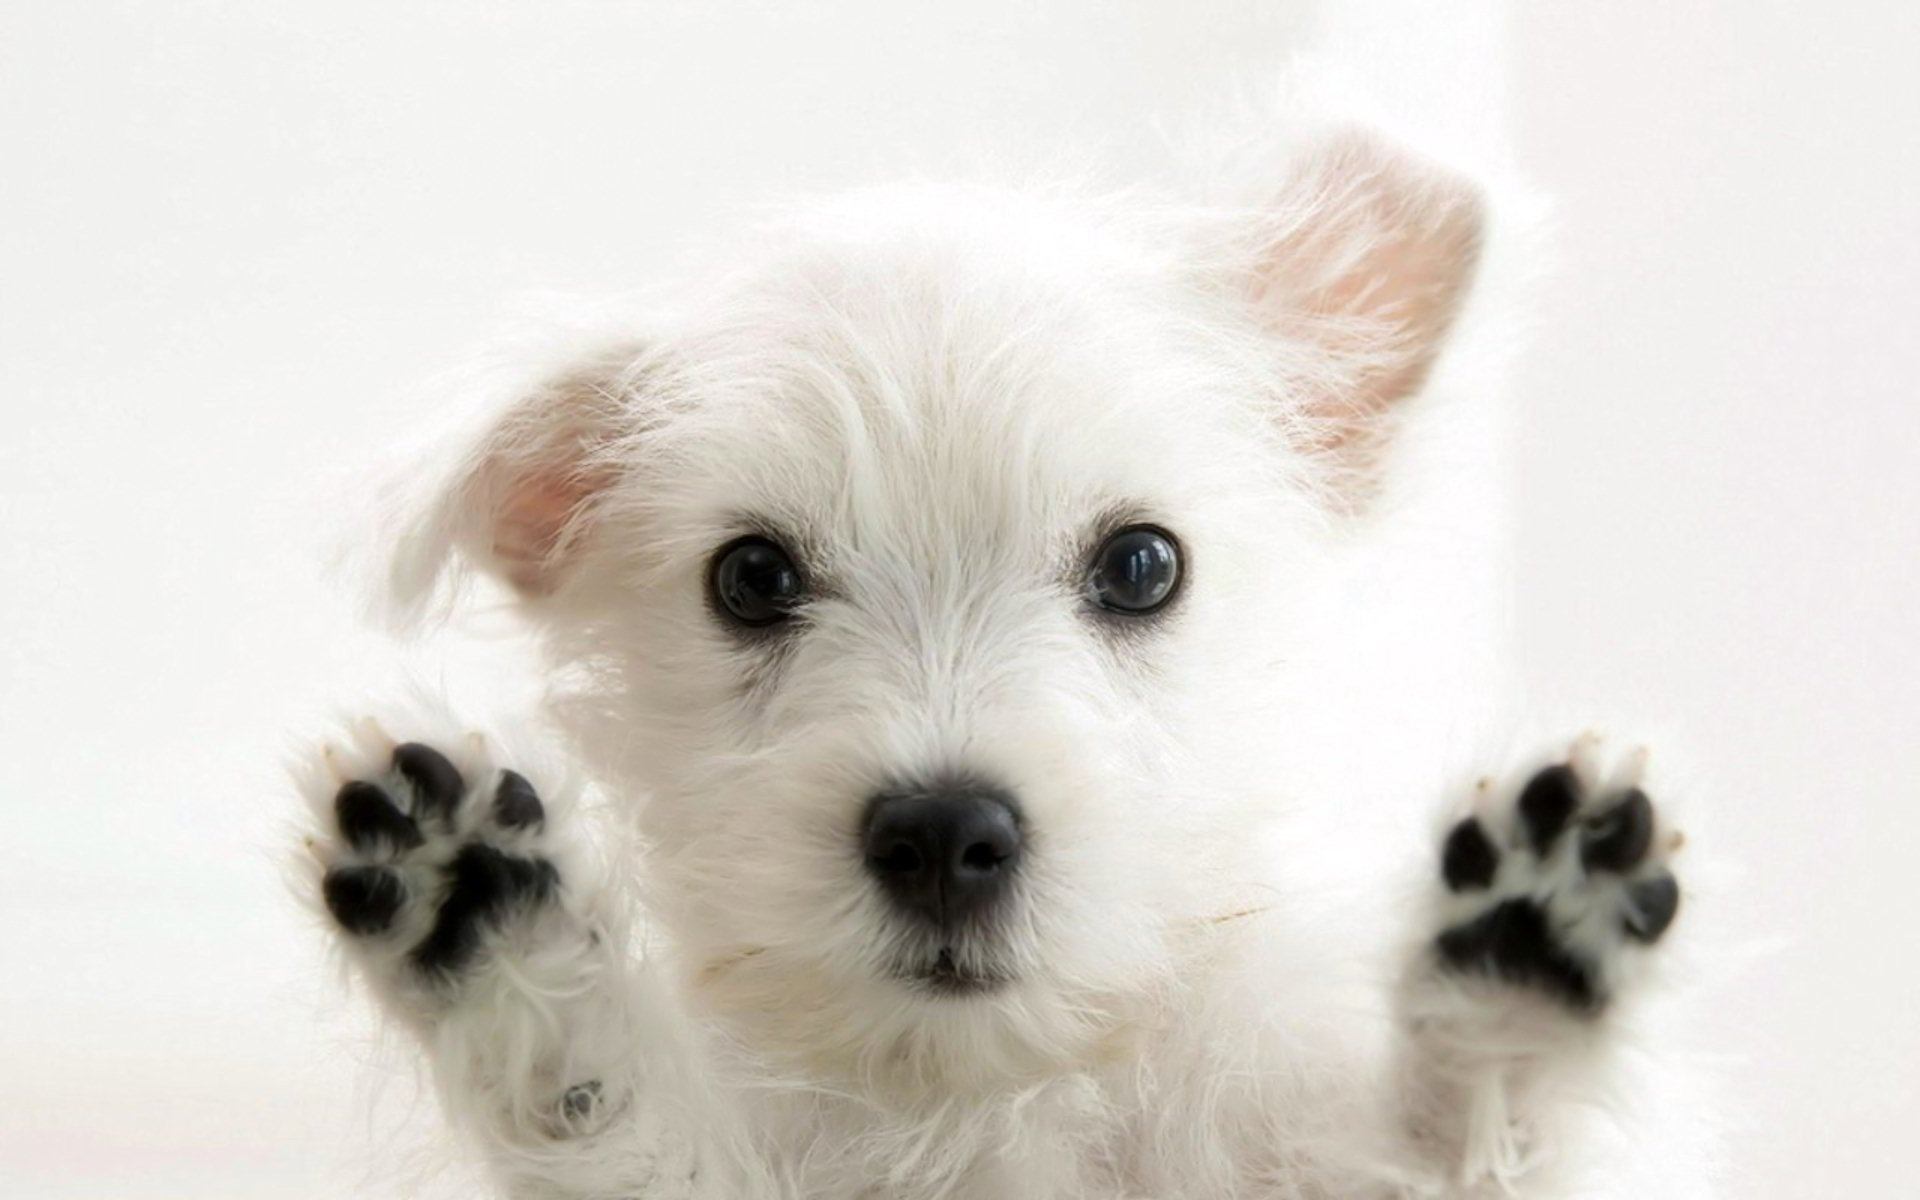 New Dogs Wallpapers Download High Quality HD Images 1920x1200